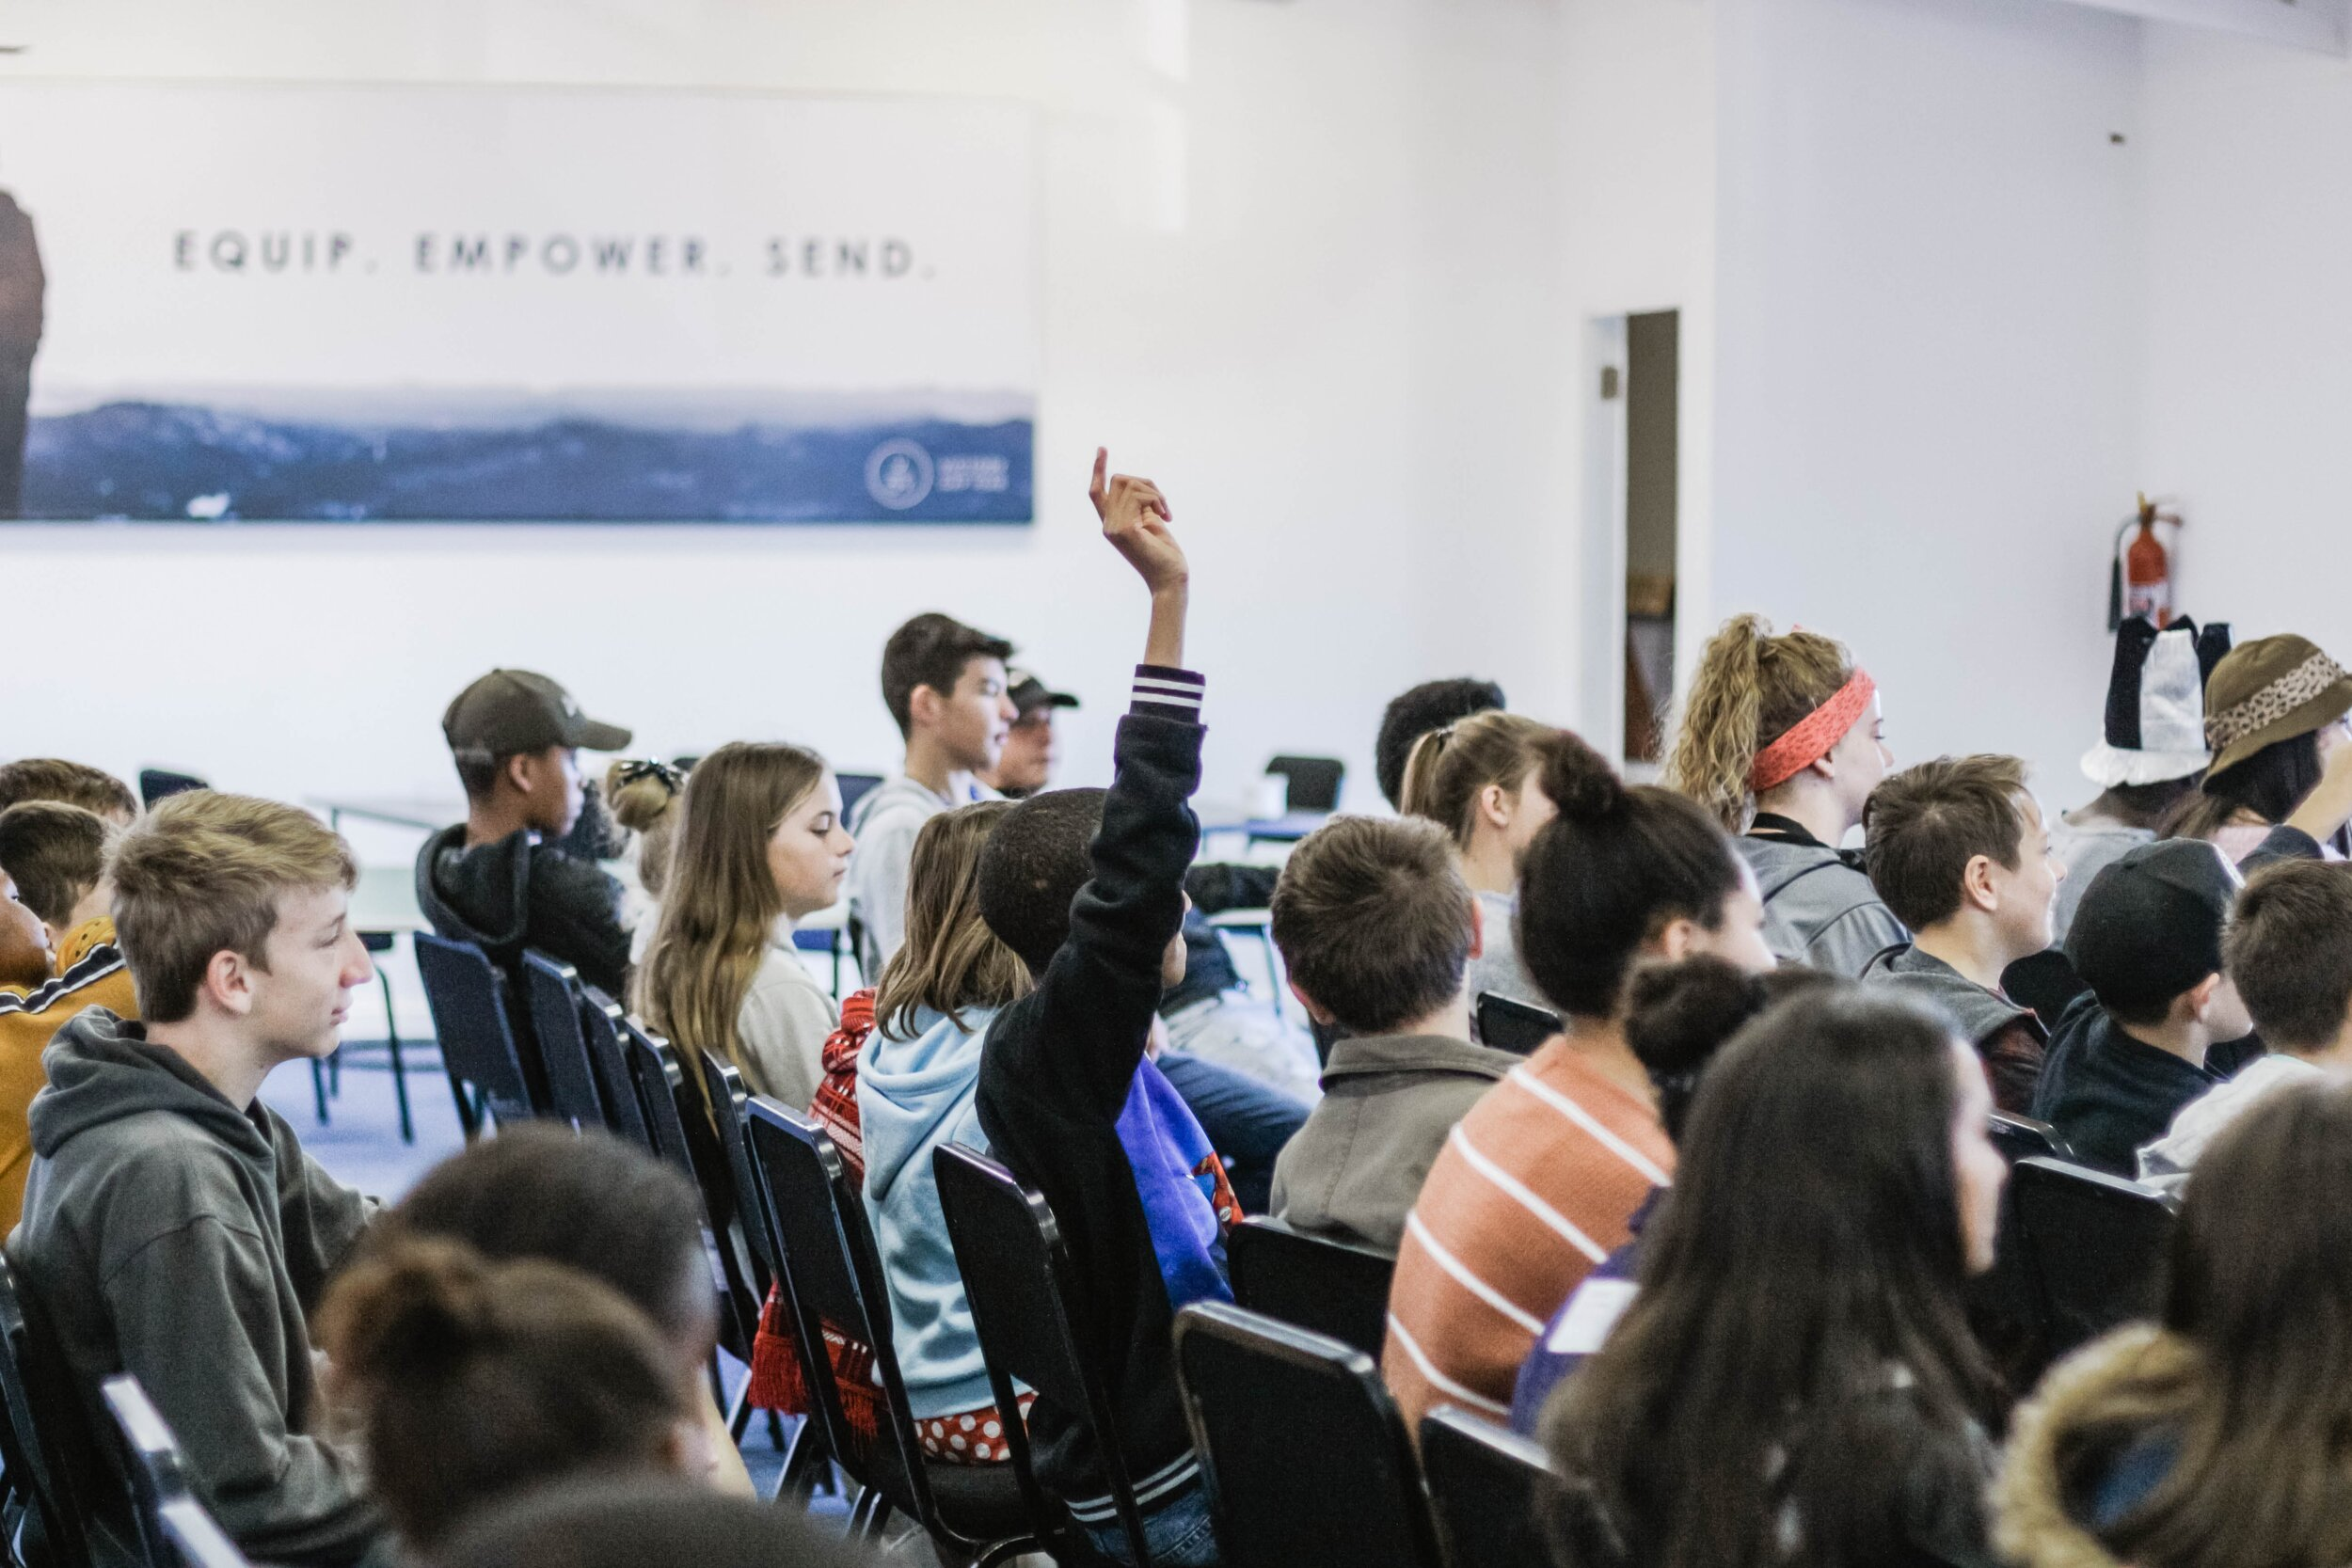 Speaking Events - Connects audiences to our mission of promoting womens' and girls' issues in the areas of STEM, Entrepreneurship, Changemaking, and Body Image.